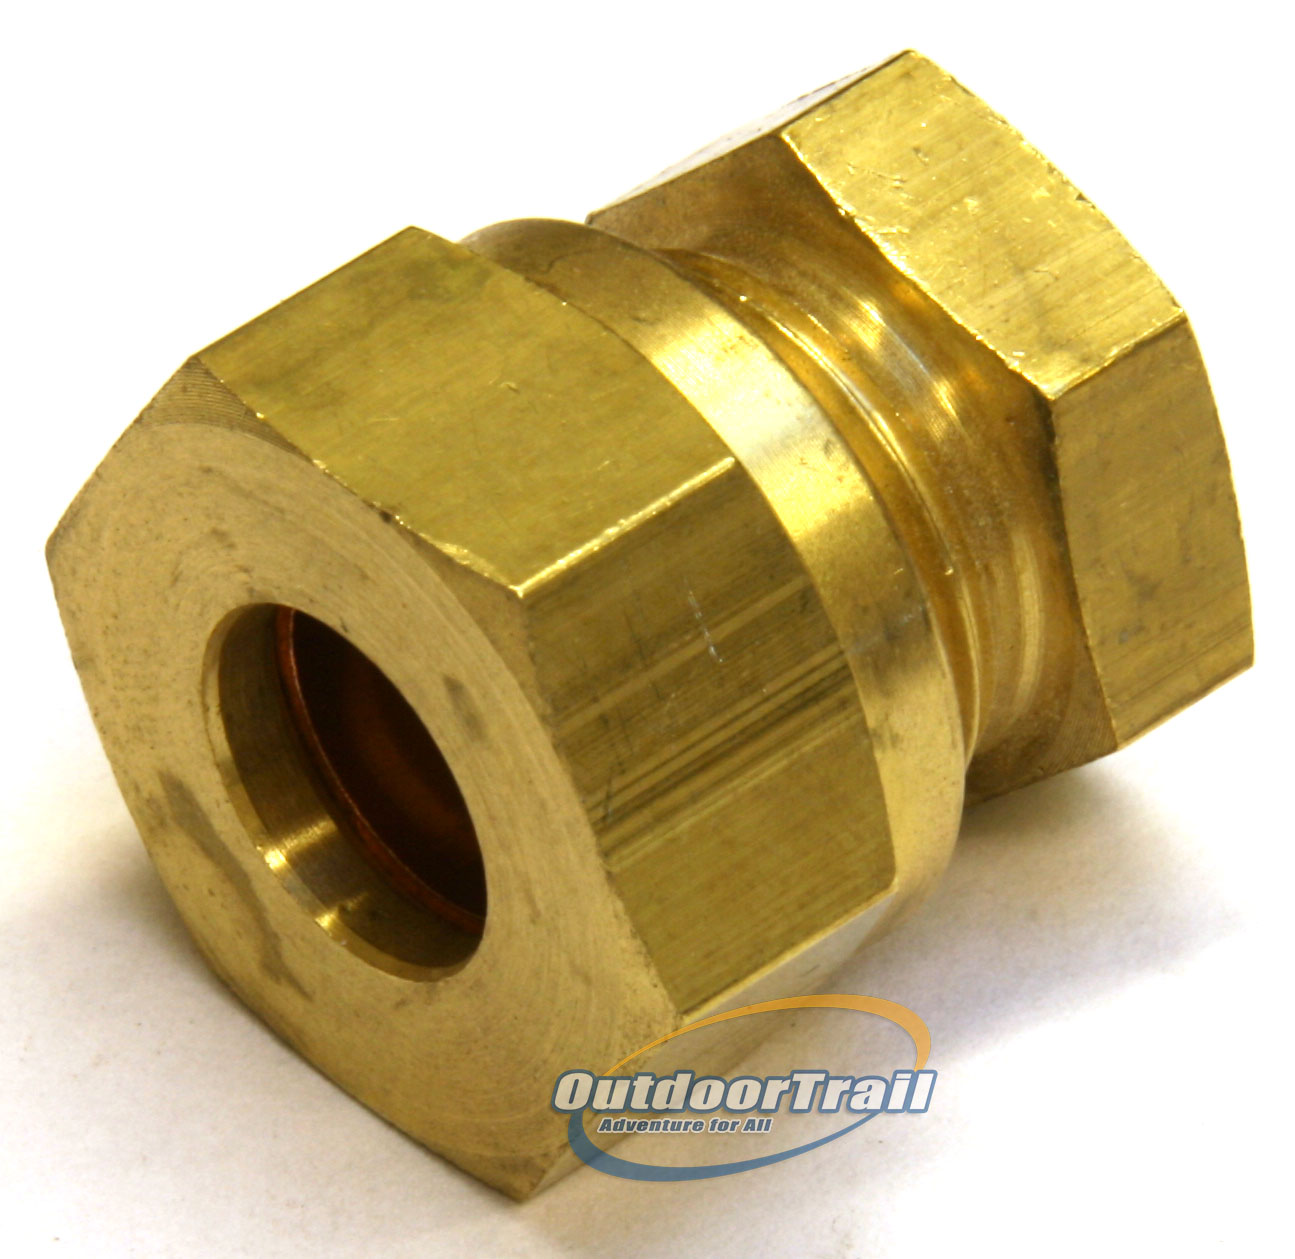 10mm copper pipe compression stop end blank for gas pipe